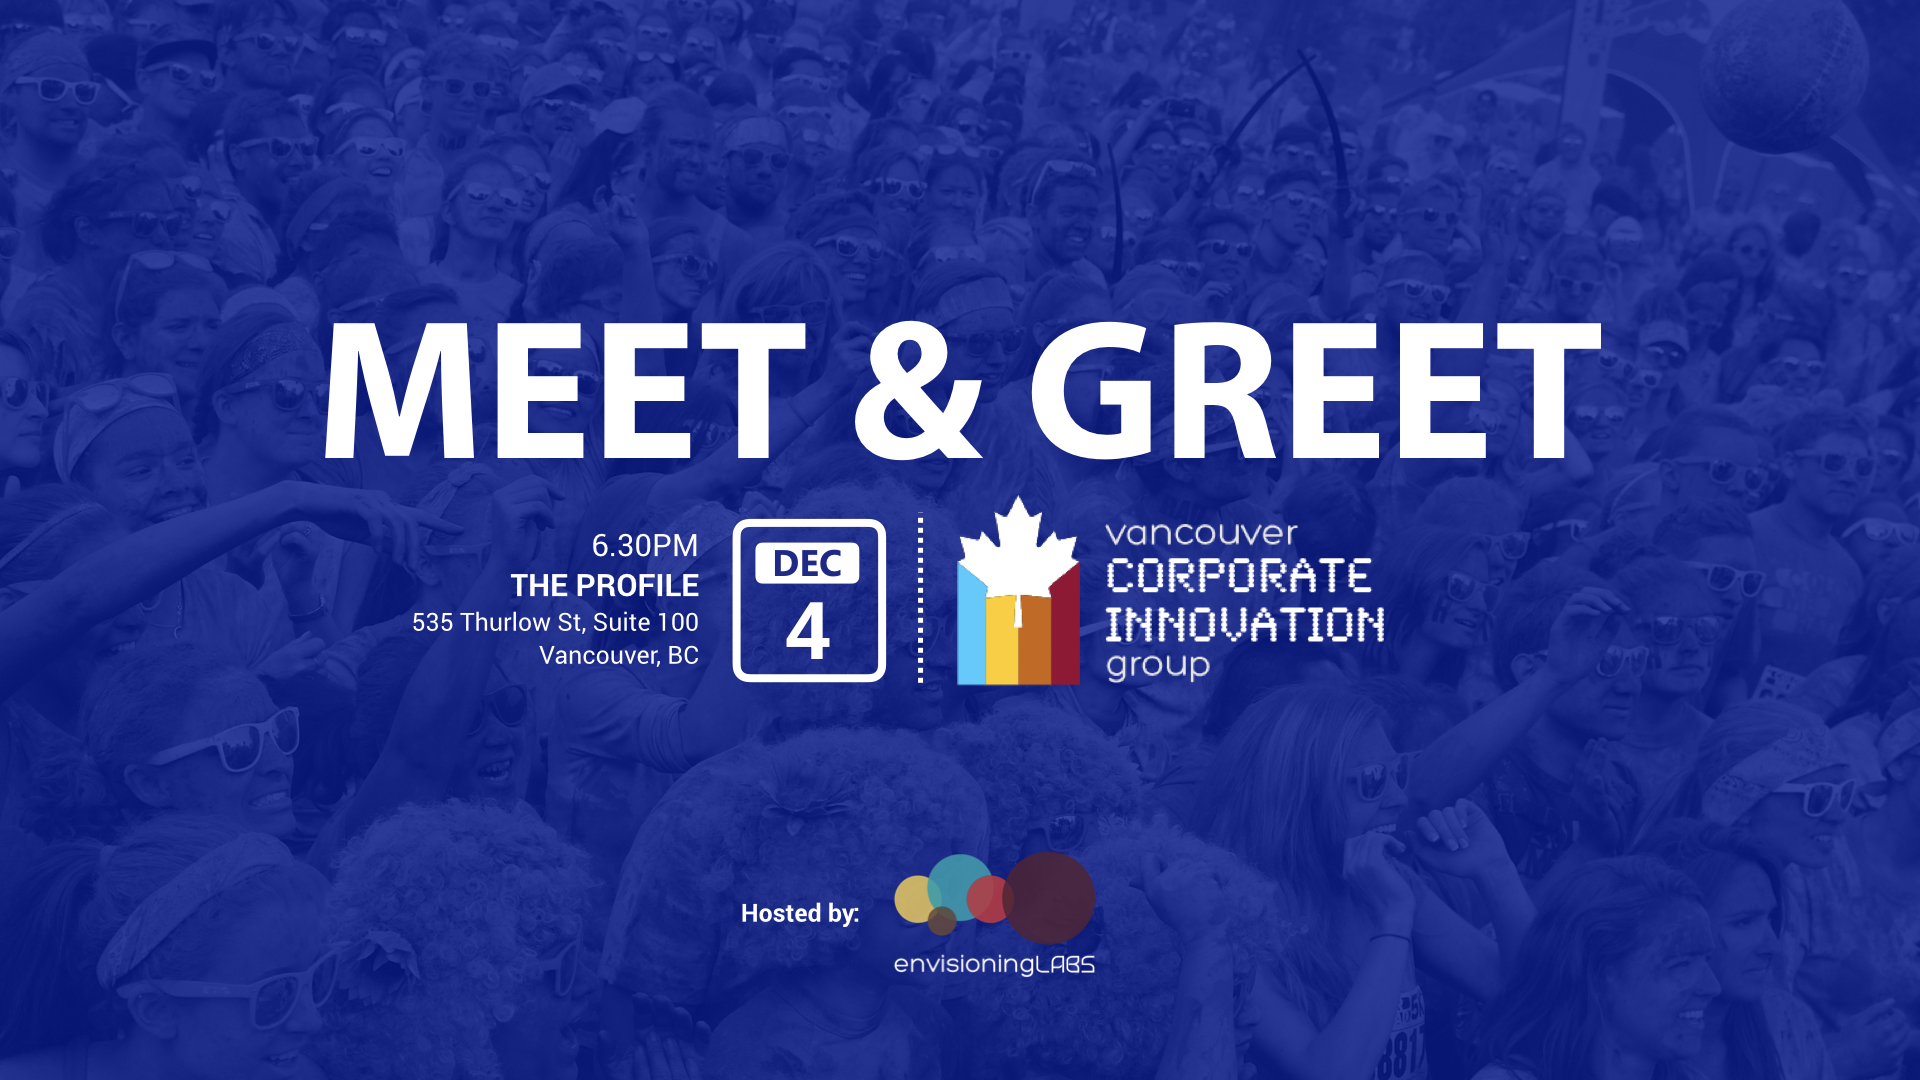 Vancouver Corporate Innovation Group Meet & Greet